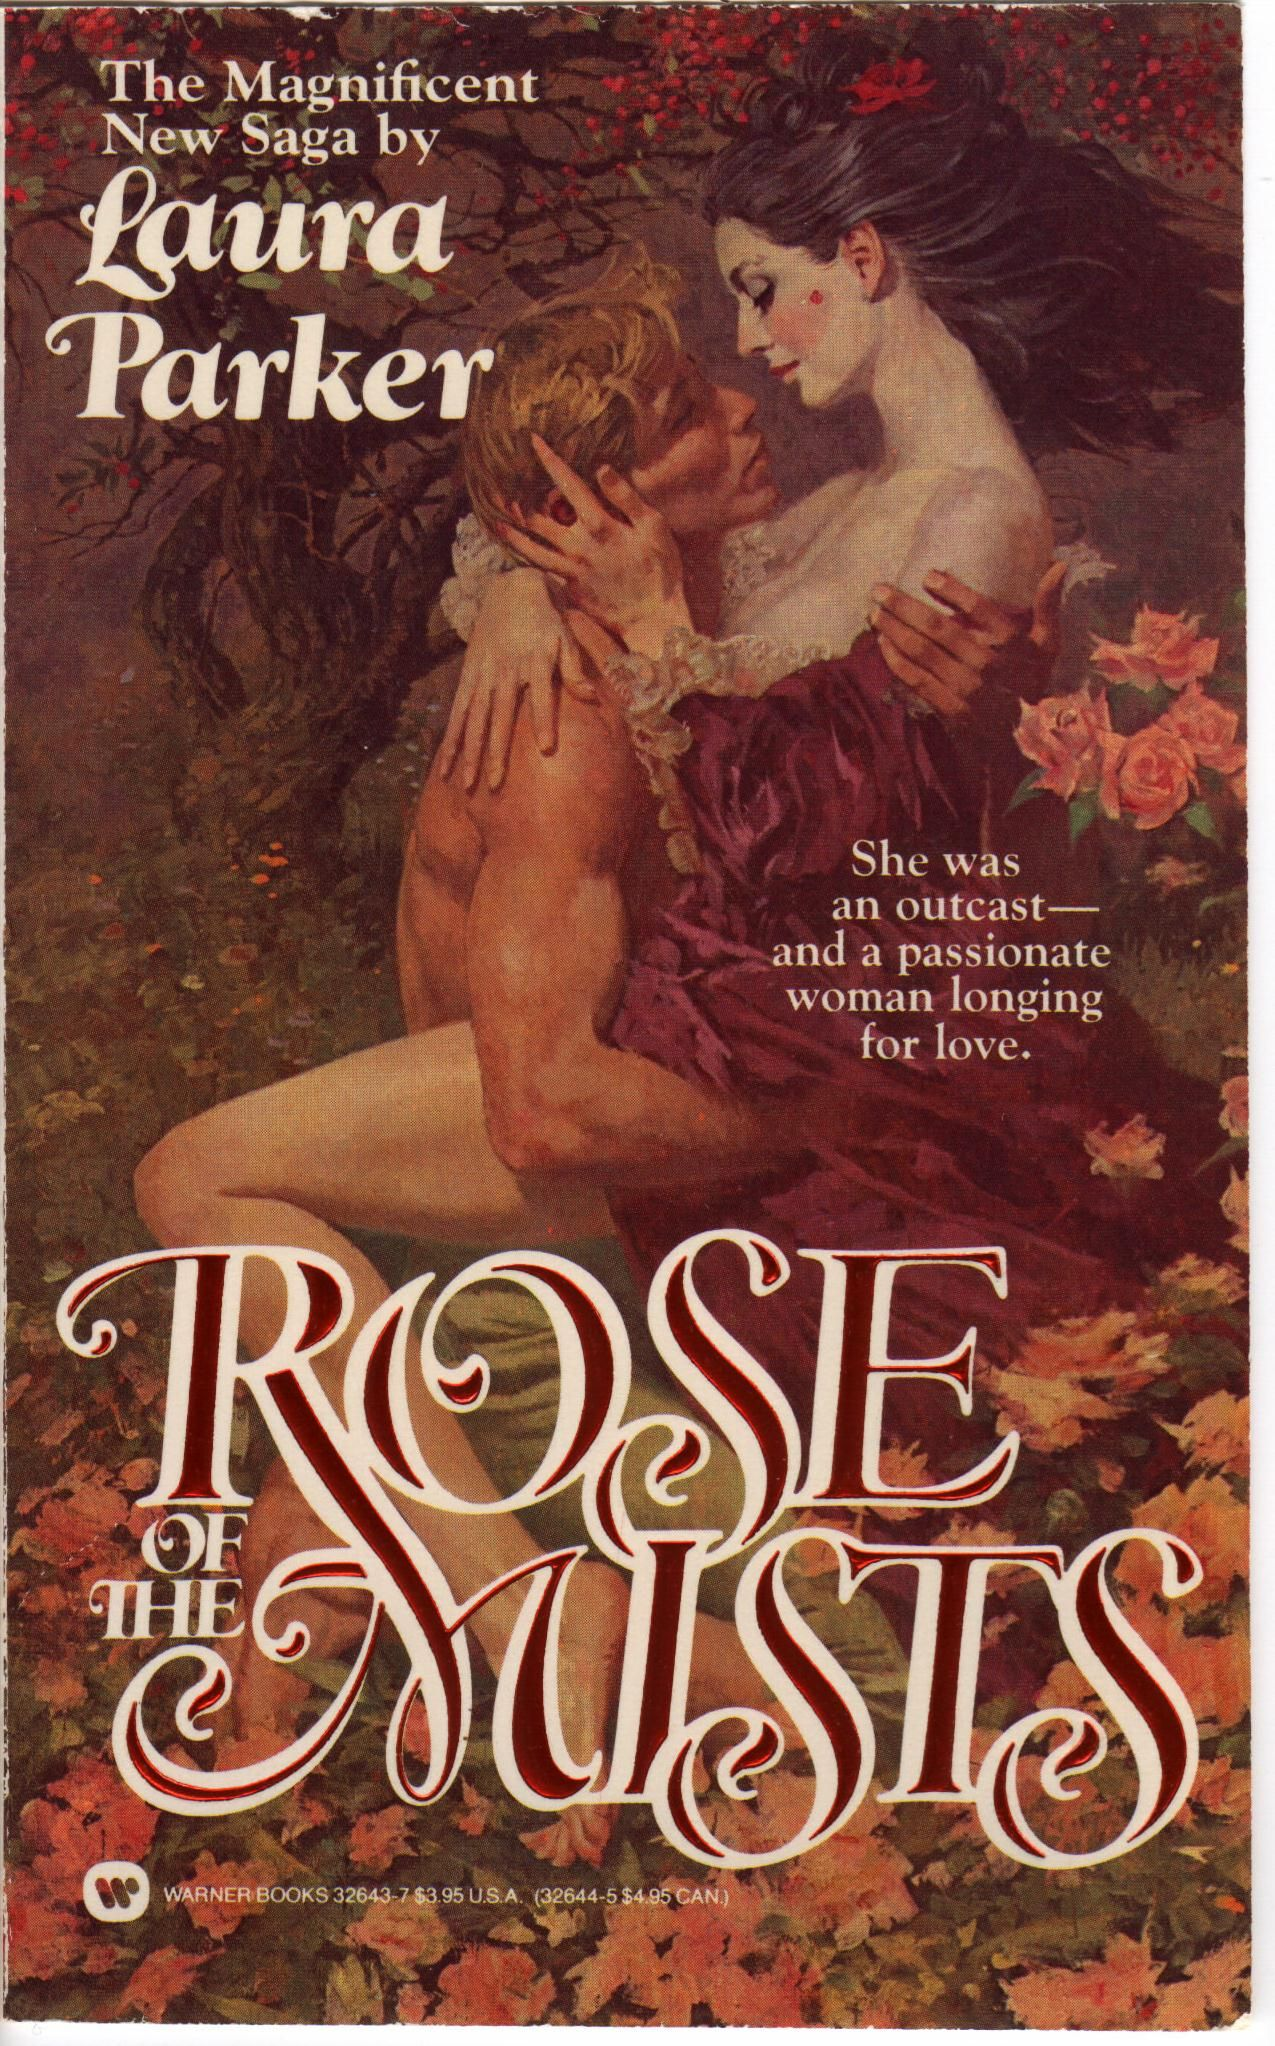 Rose of the Mists, book 1 in the Rose trilogy, by Laura Parker